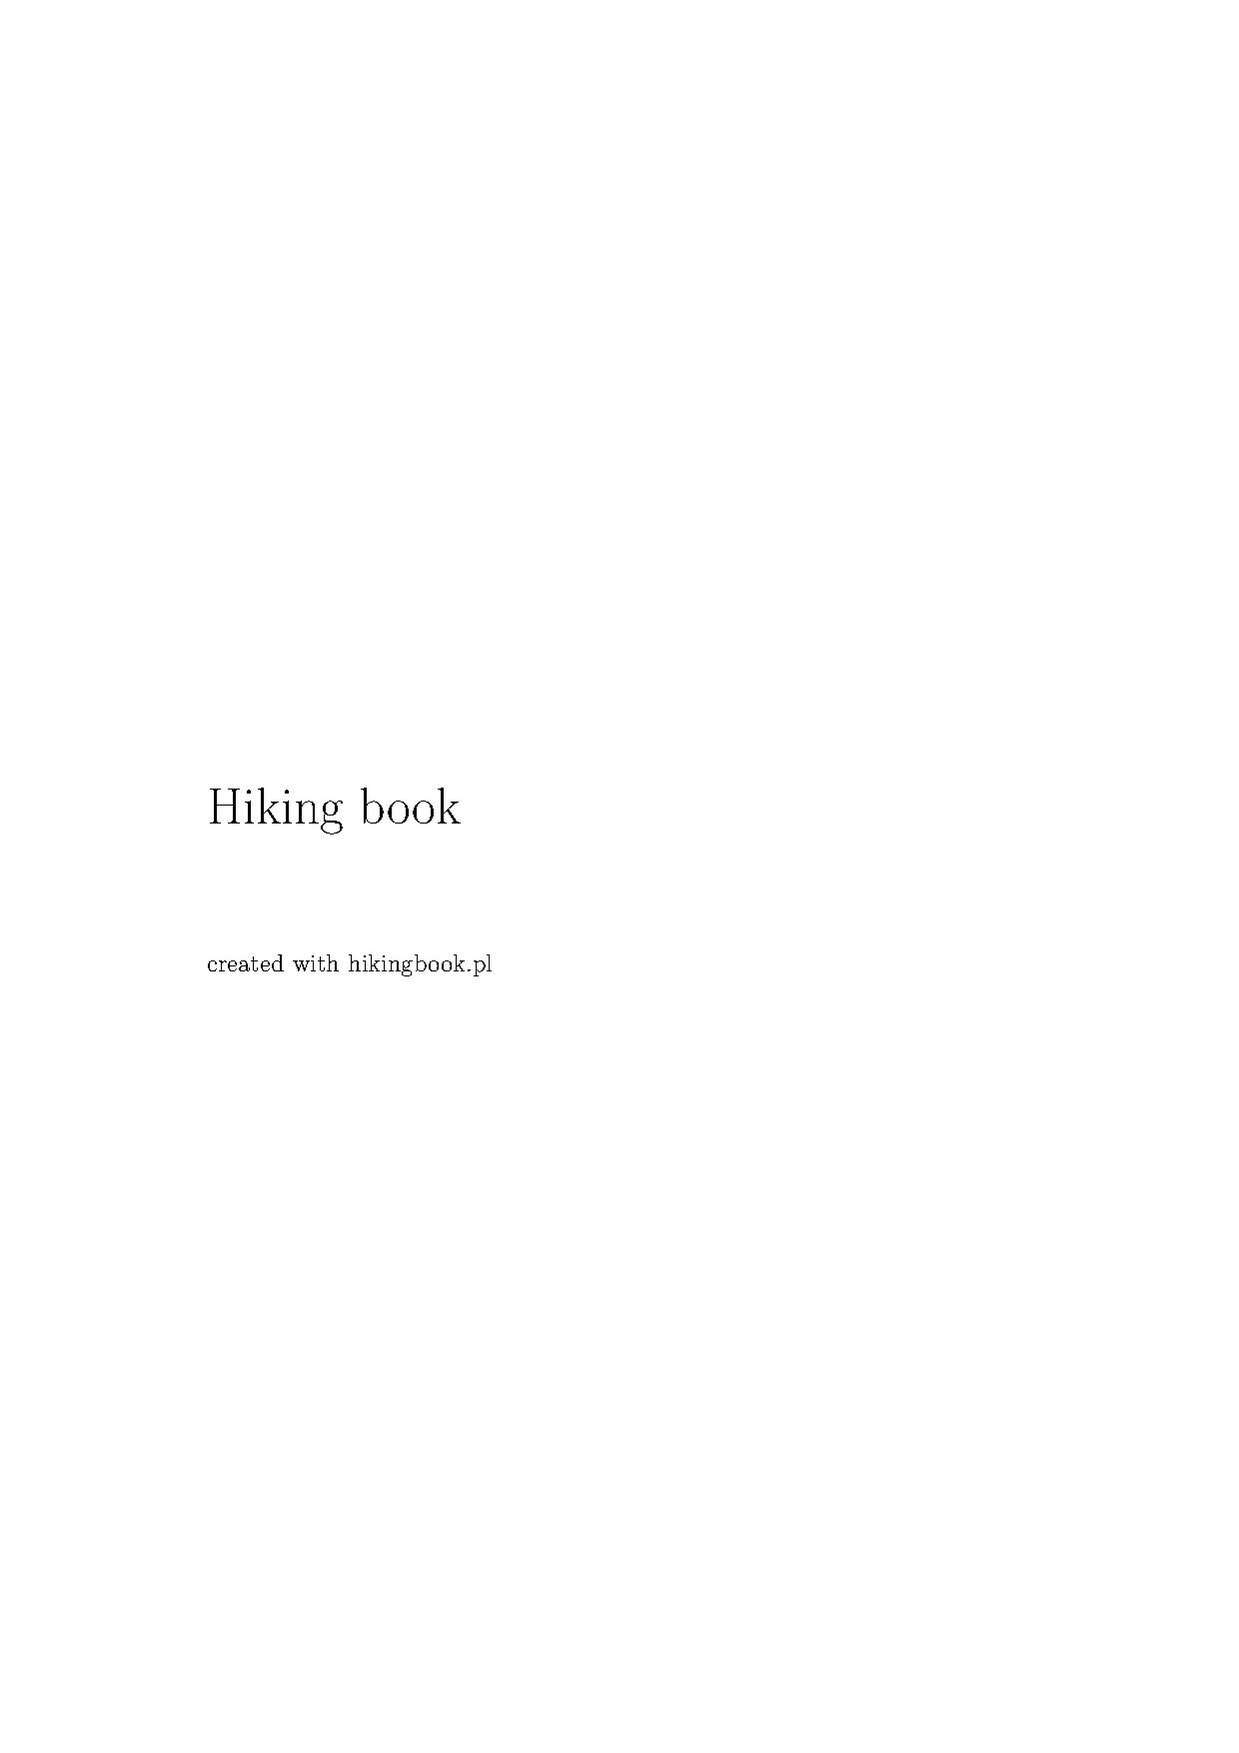 HikingbookSwitzerland05.pdf